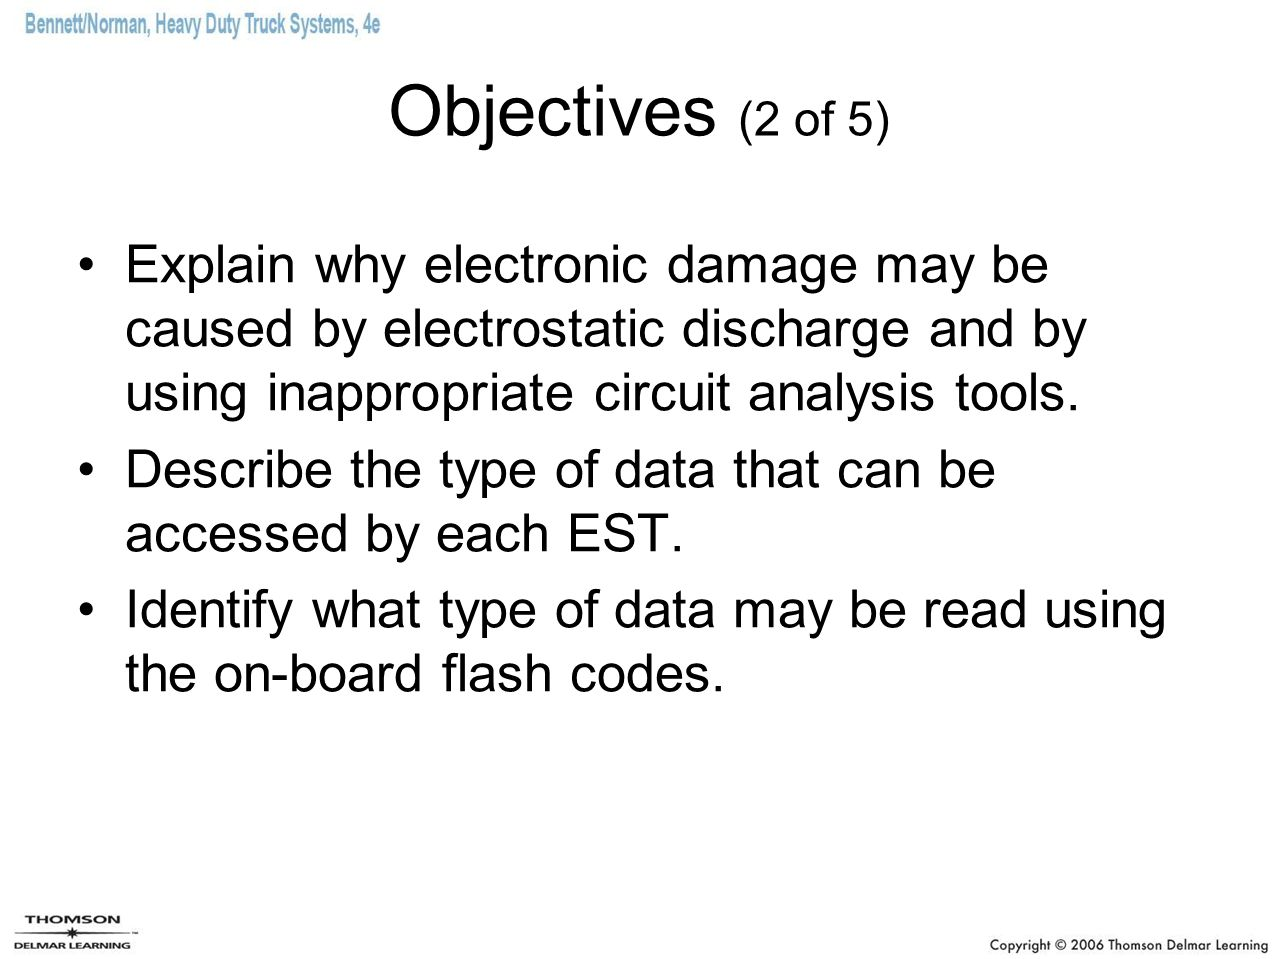 Diagnosis And Repair Of Electronic Circuits Ppt Video Online Download Photo Flash 220v Flasher Circuit Electronics Projects Objectives 2 5 Explain Why Damage May Be Caused By Electrostatic Discharge